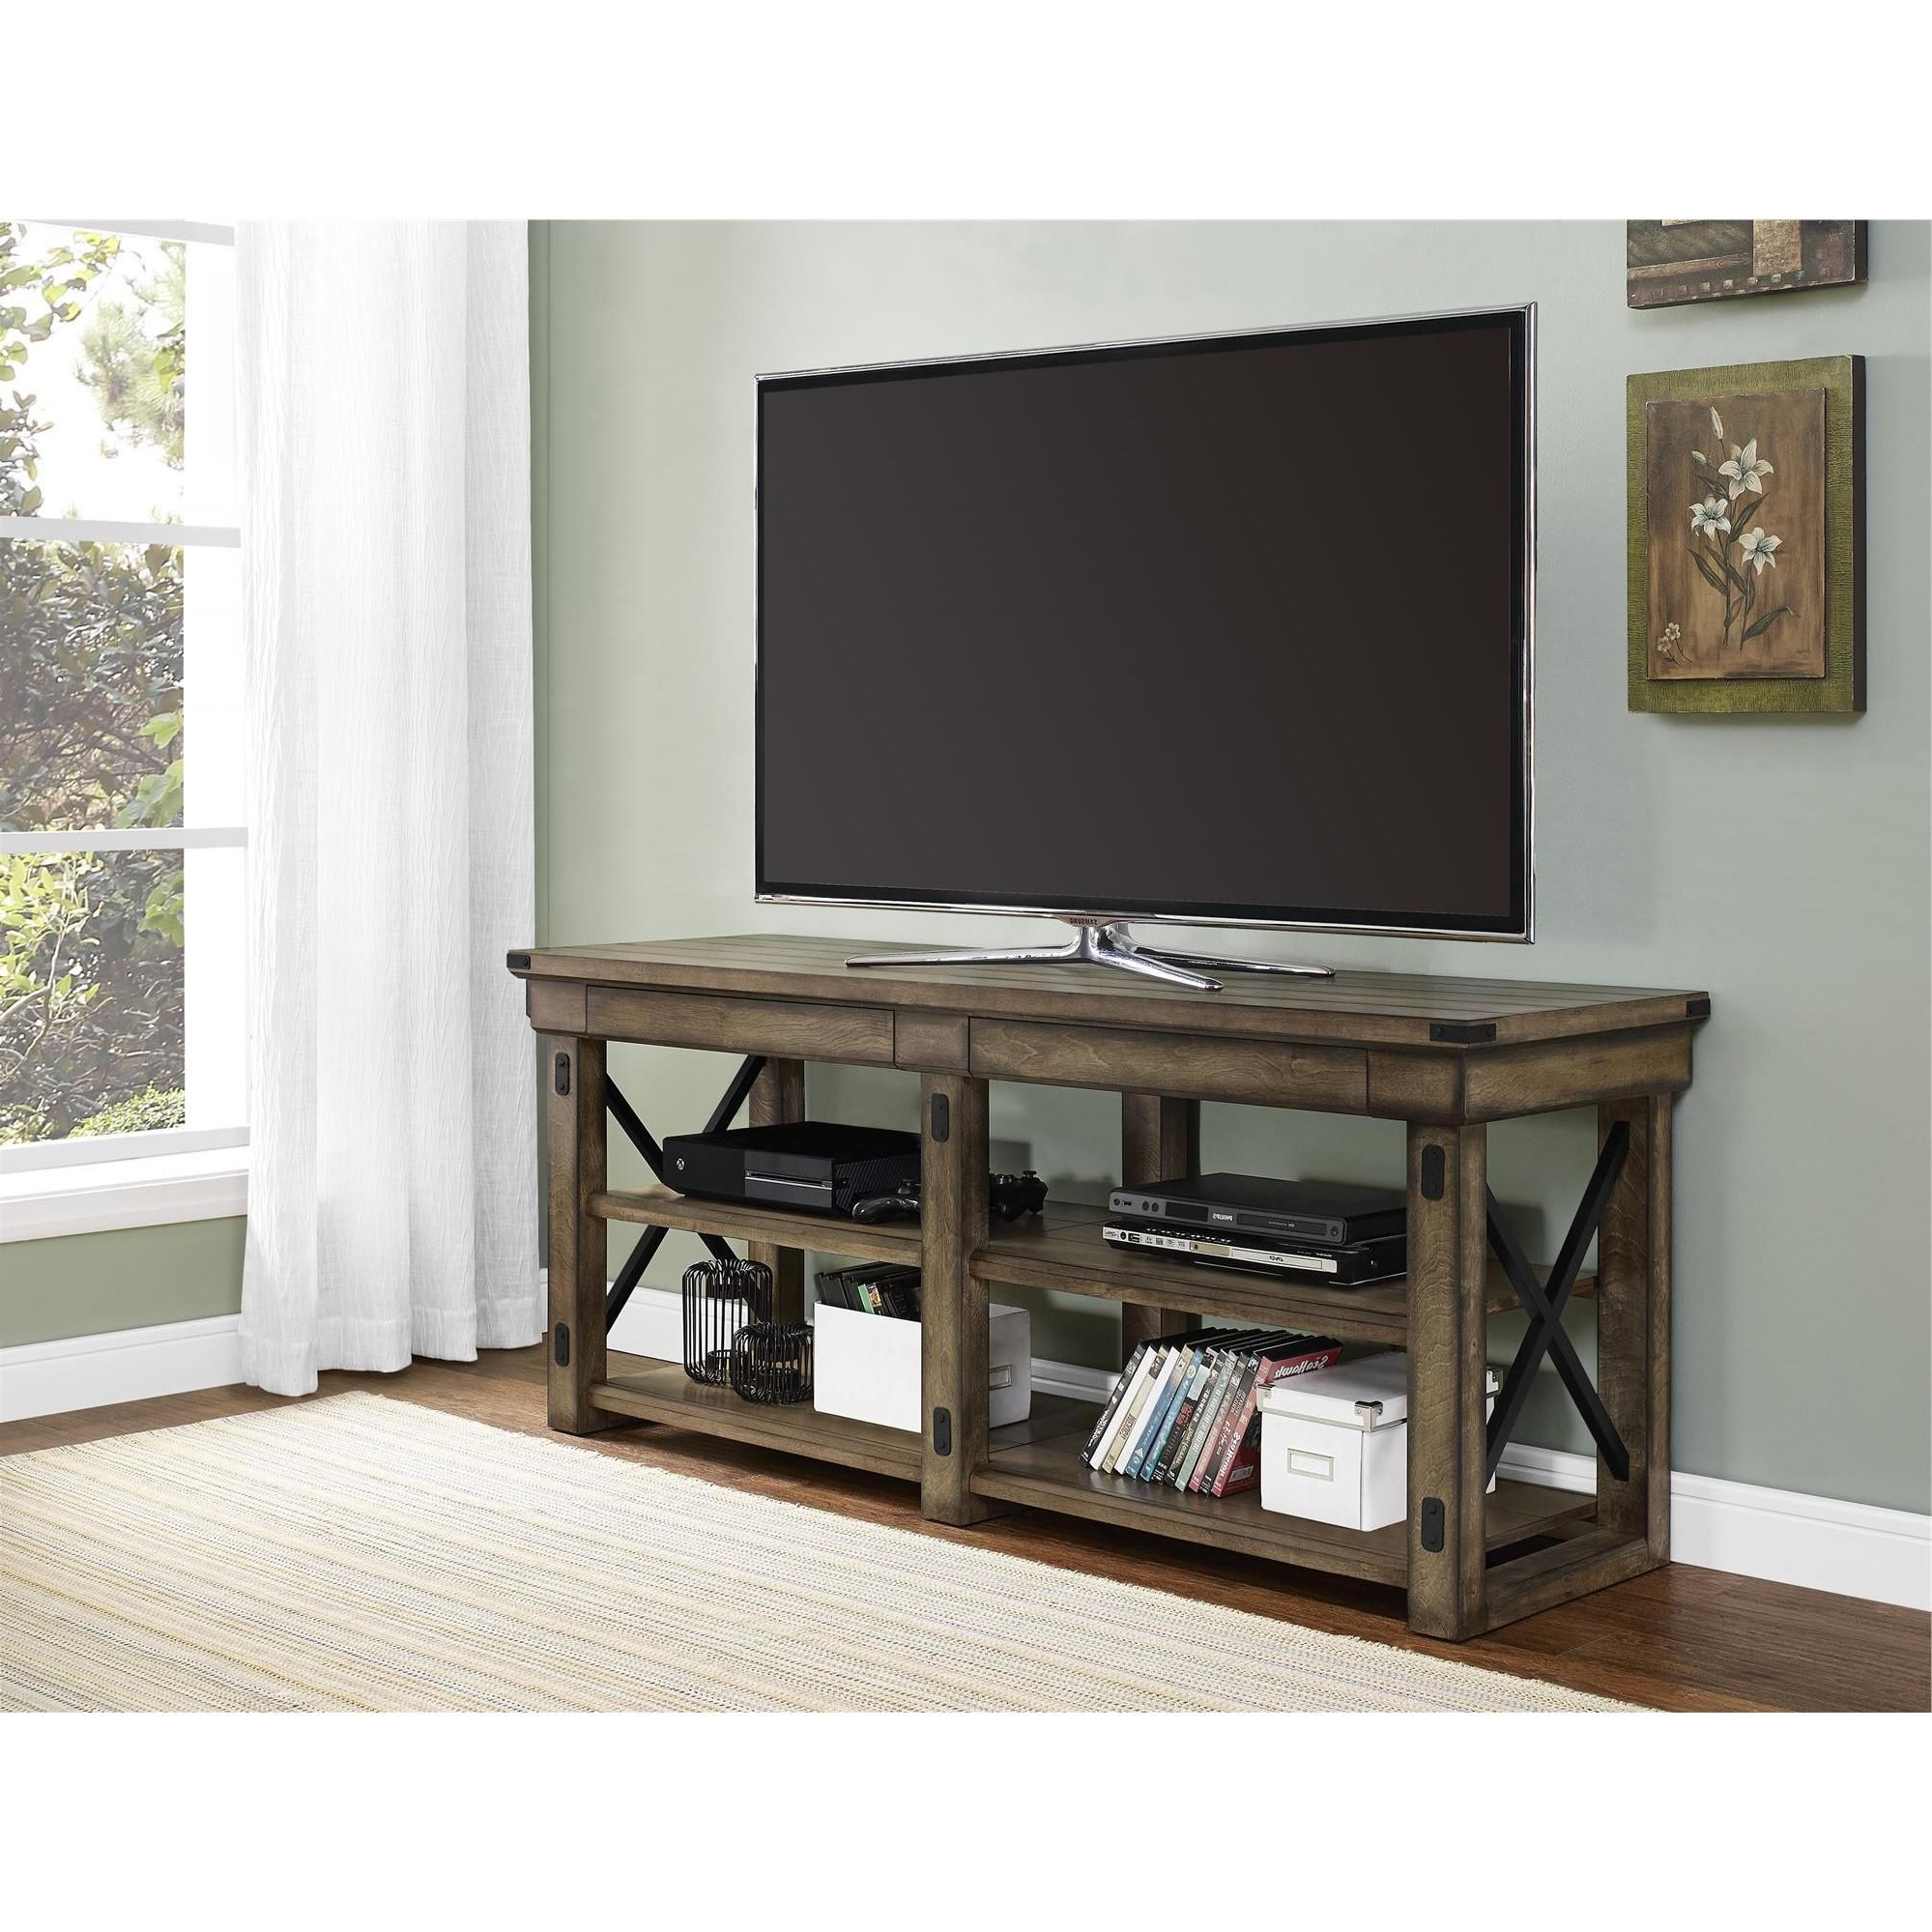 Bring Beauty And Better Organization Into Your Living Room With The Intended For Preston 66 Inch Tv Stands (Gallery 2 of 20)